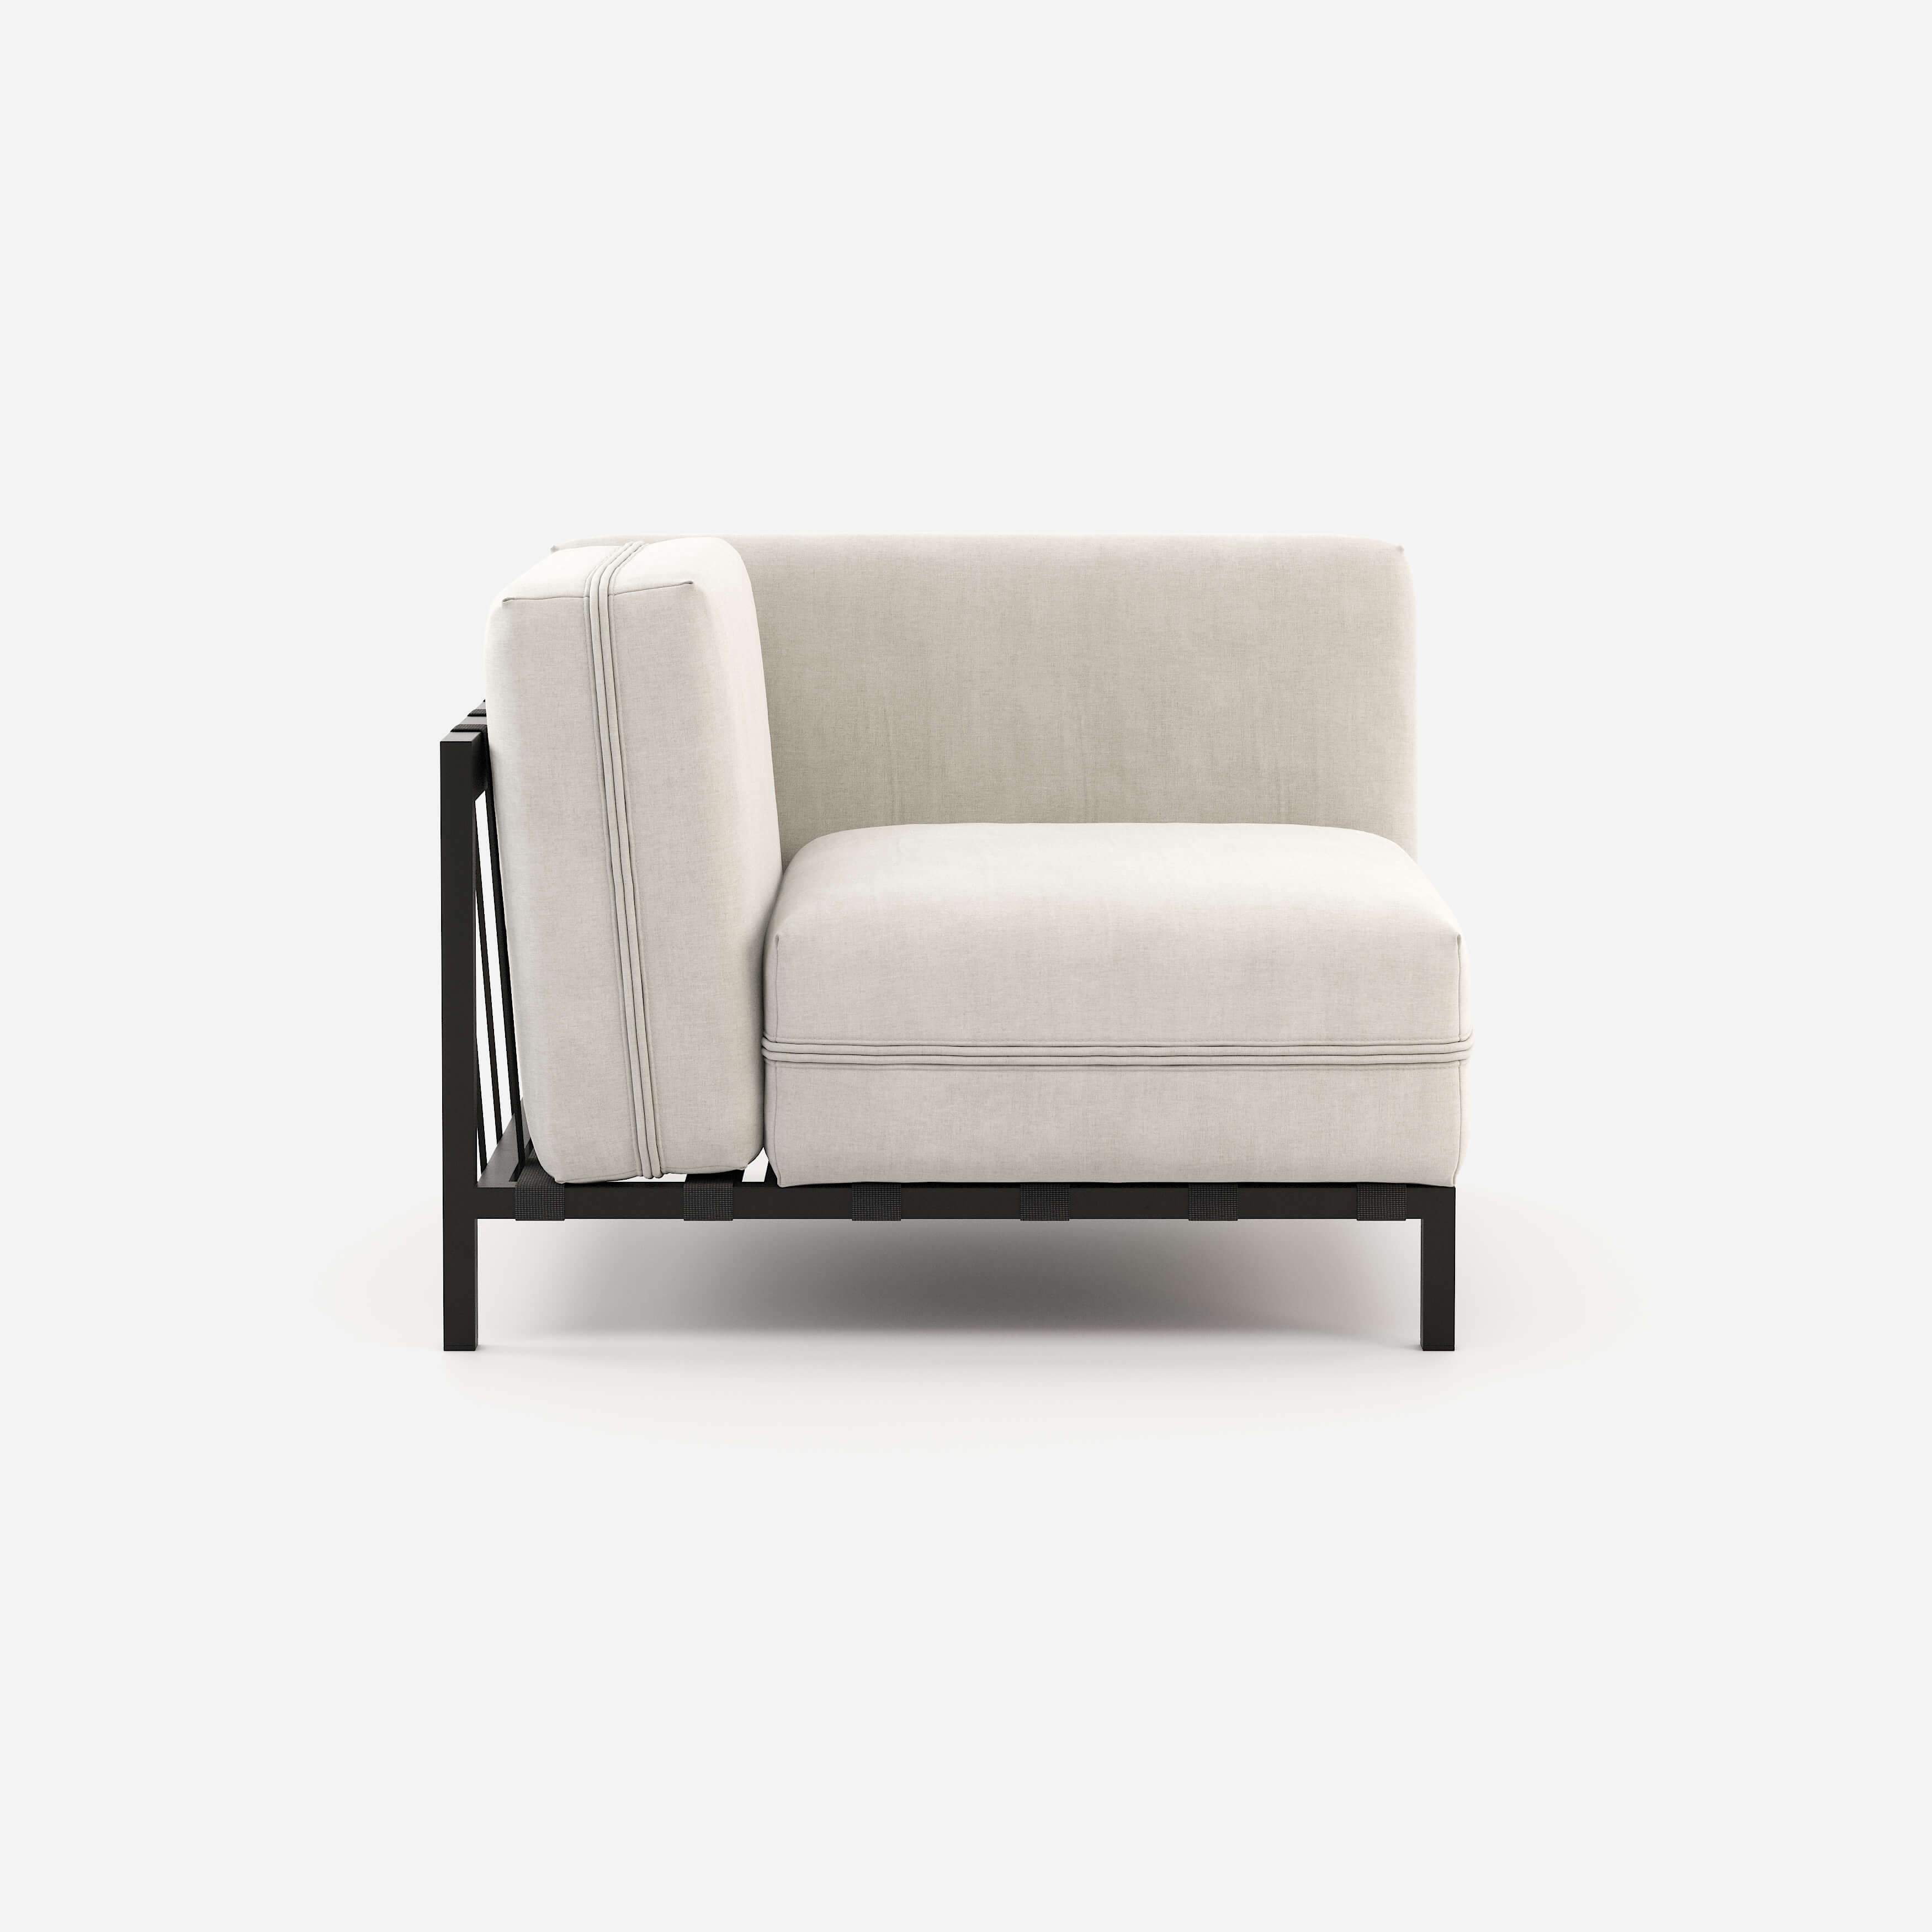 Bondi Corner Sofa-upholstery-domkapa-outdoor-collection-interior-design-home-furniture-home-decor-trends-2